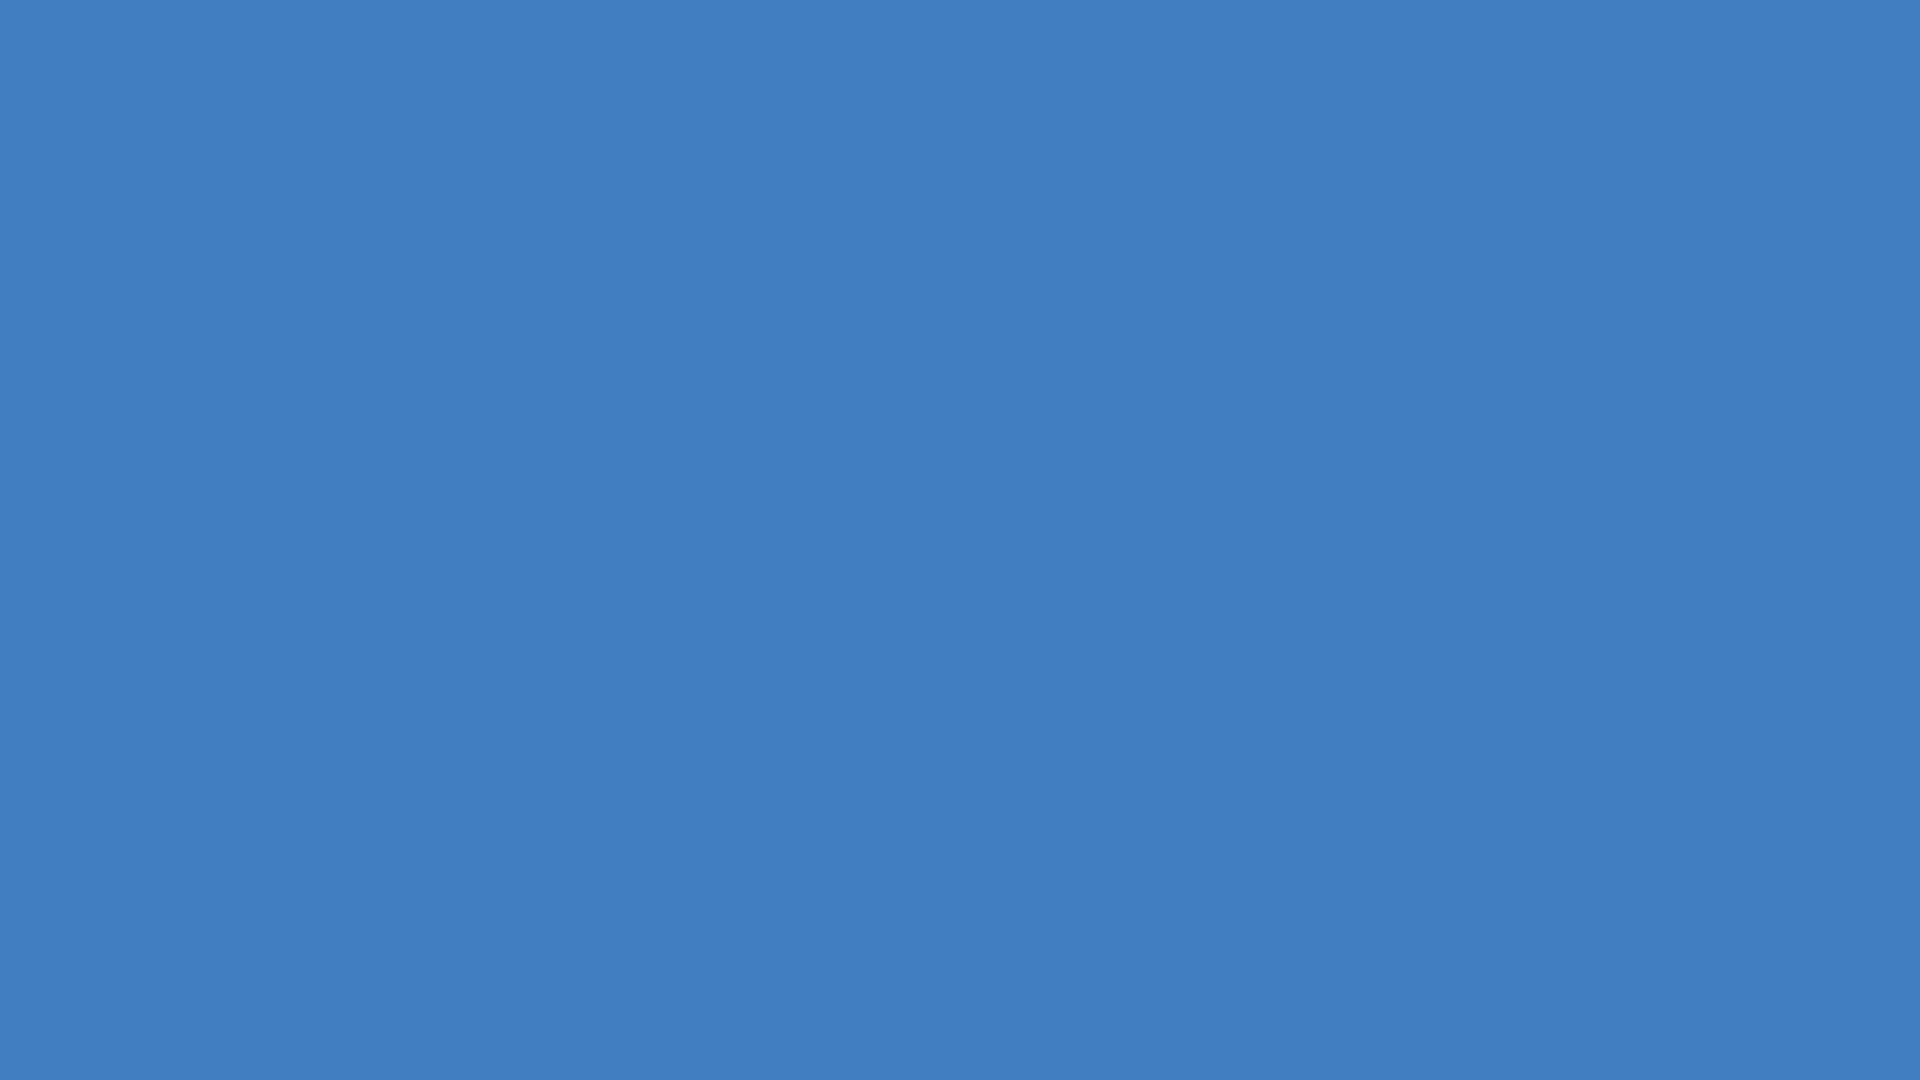 1920x1080 Tufts Blue Solid Color Background